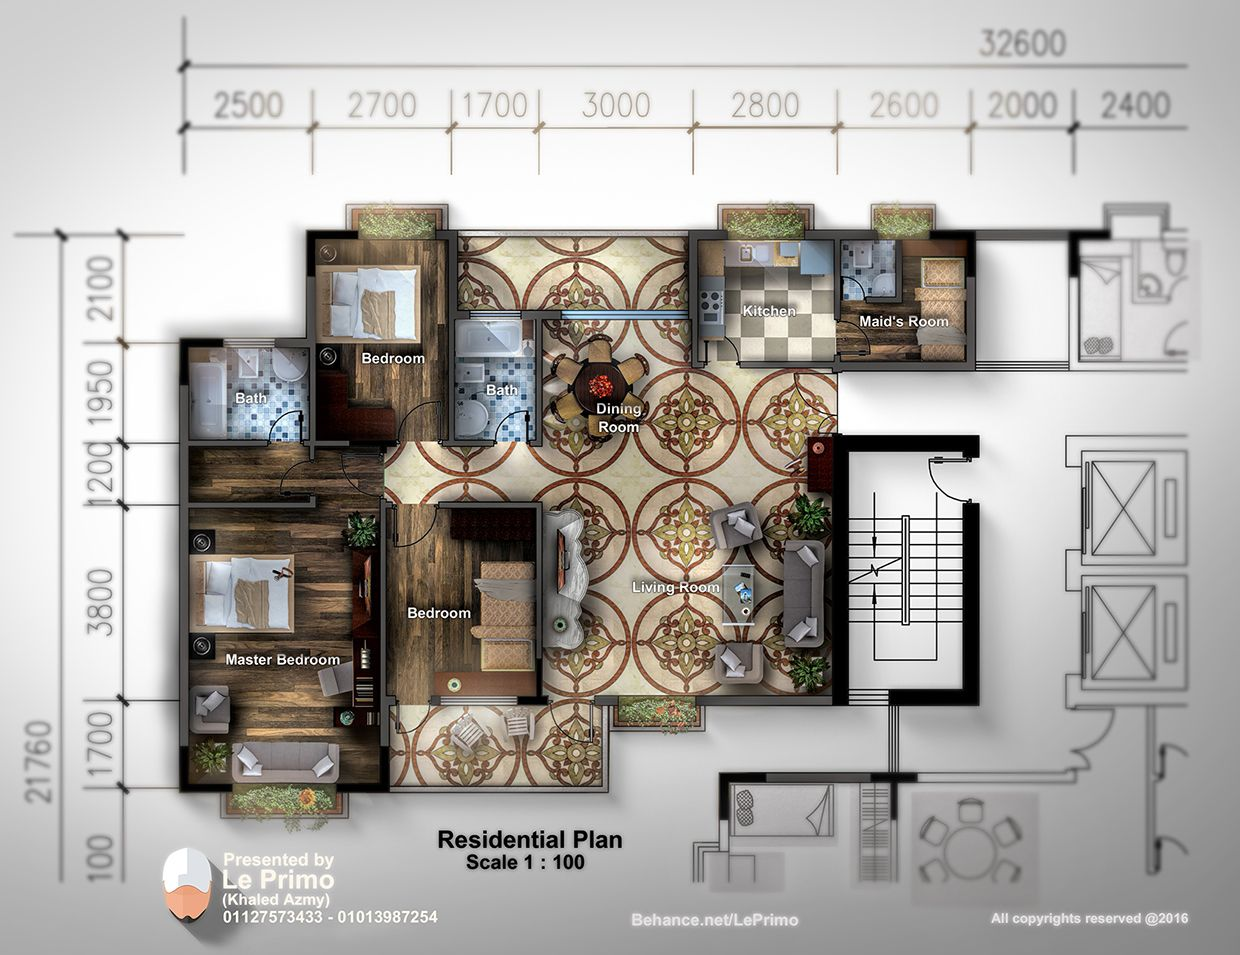 Rendering of Residential House  Plan  By Photoshop  Maids